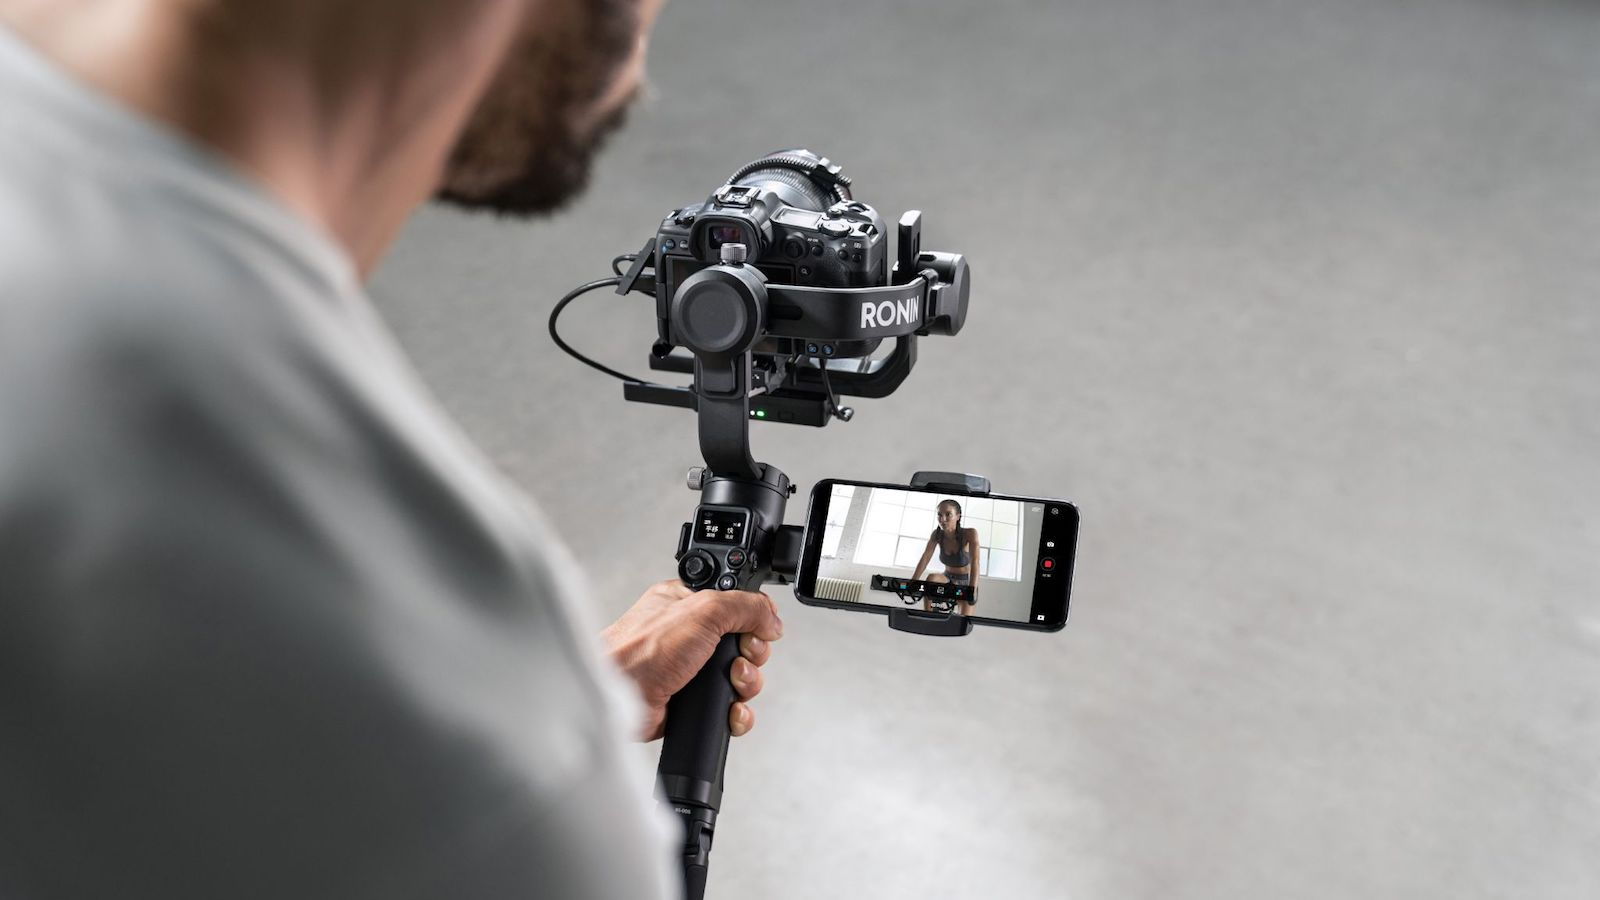 DJI RSC 2 compact camera stabilizer has a foldable design and intuitive features